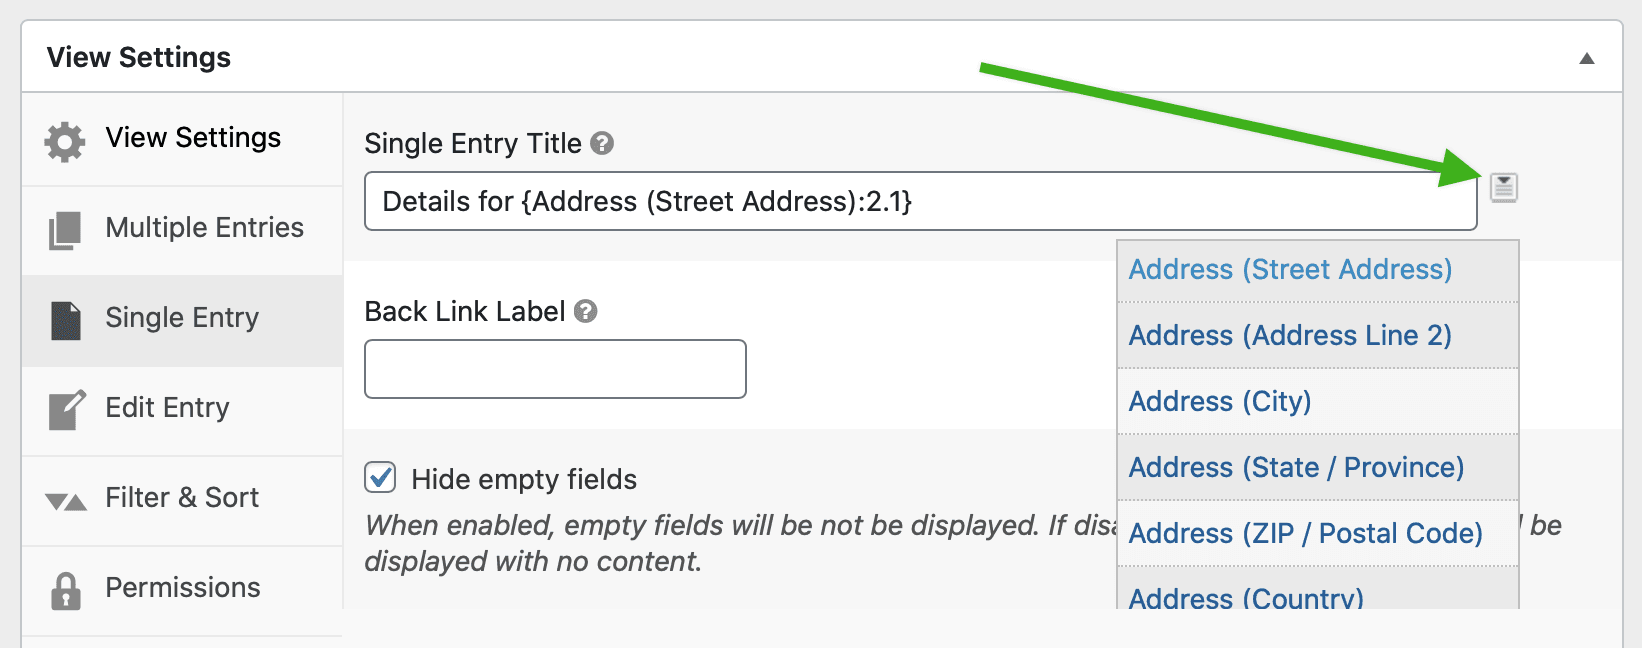 Screenshot of clicking a Merge Tag icon next to the Single Entry Title input